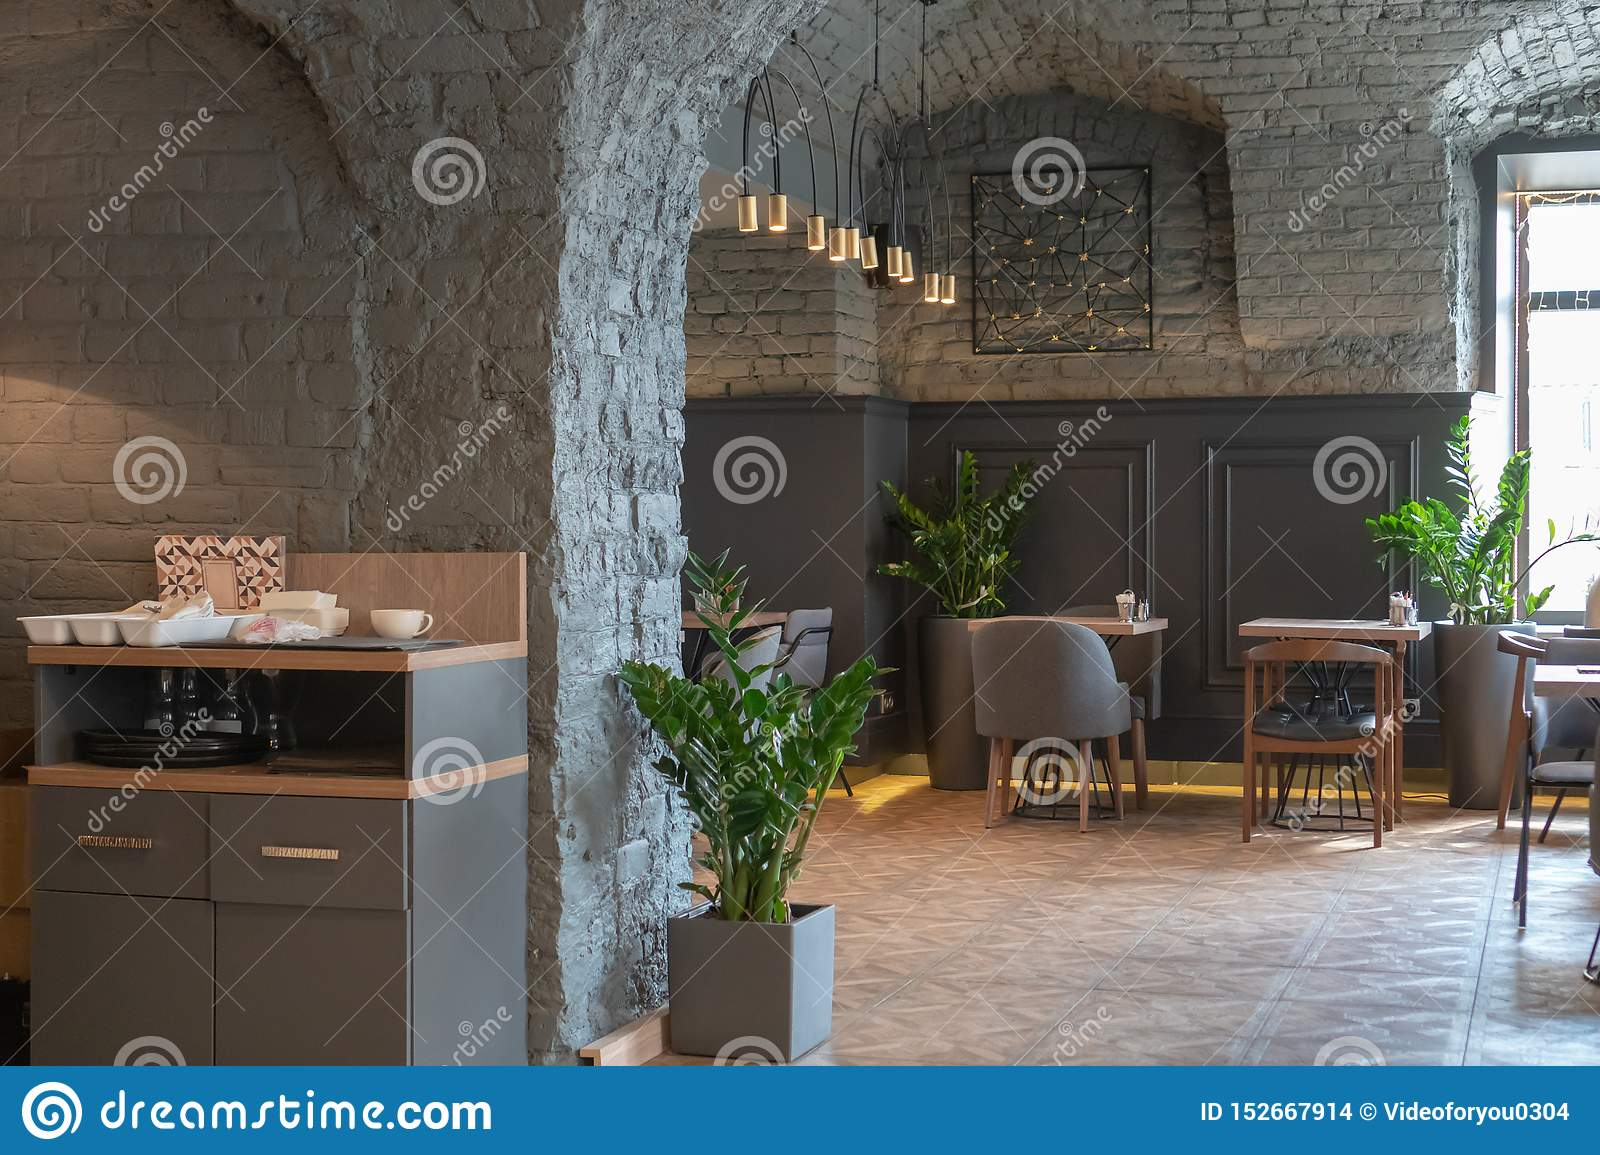 The interior of a cozy restaurant in the loft style. Stylish cafe with a brick gray wall